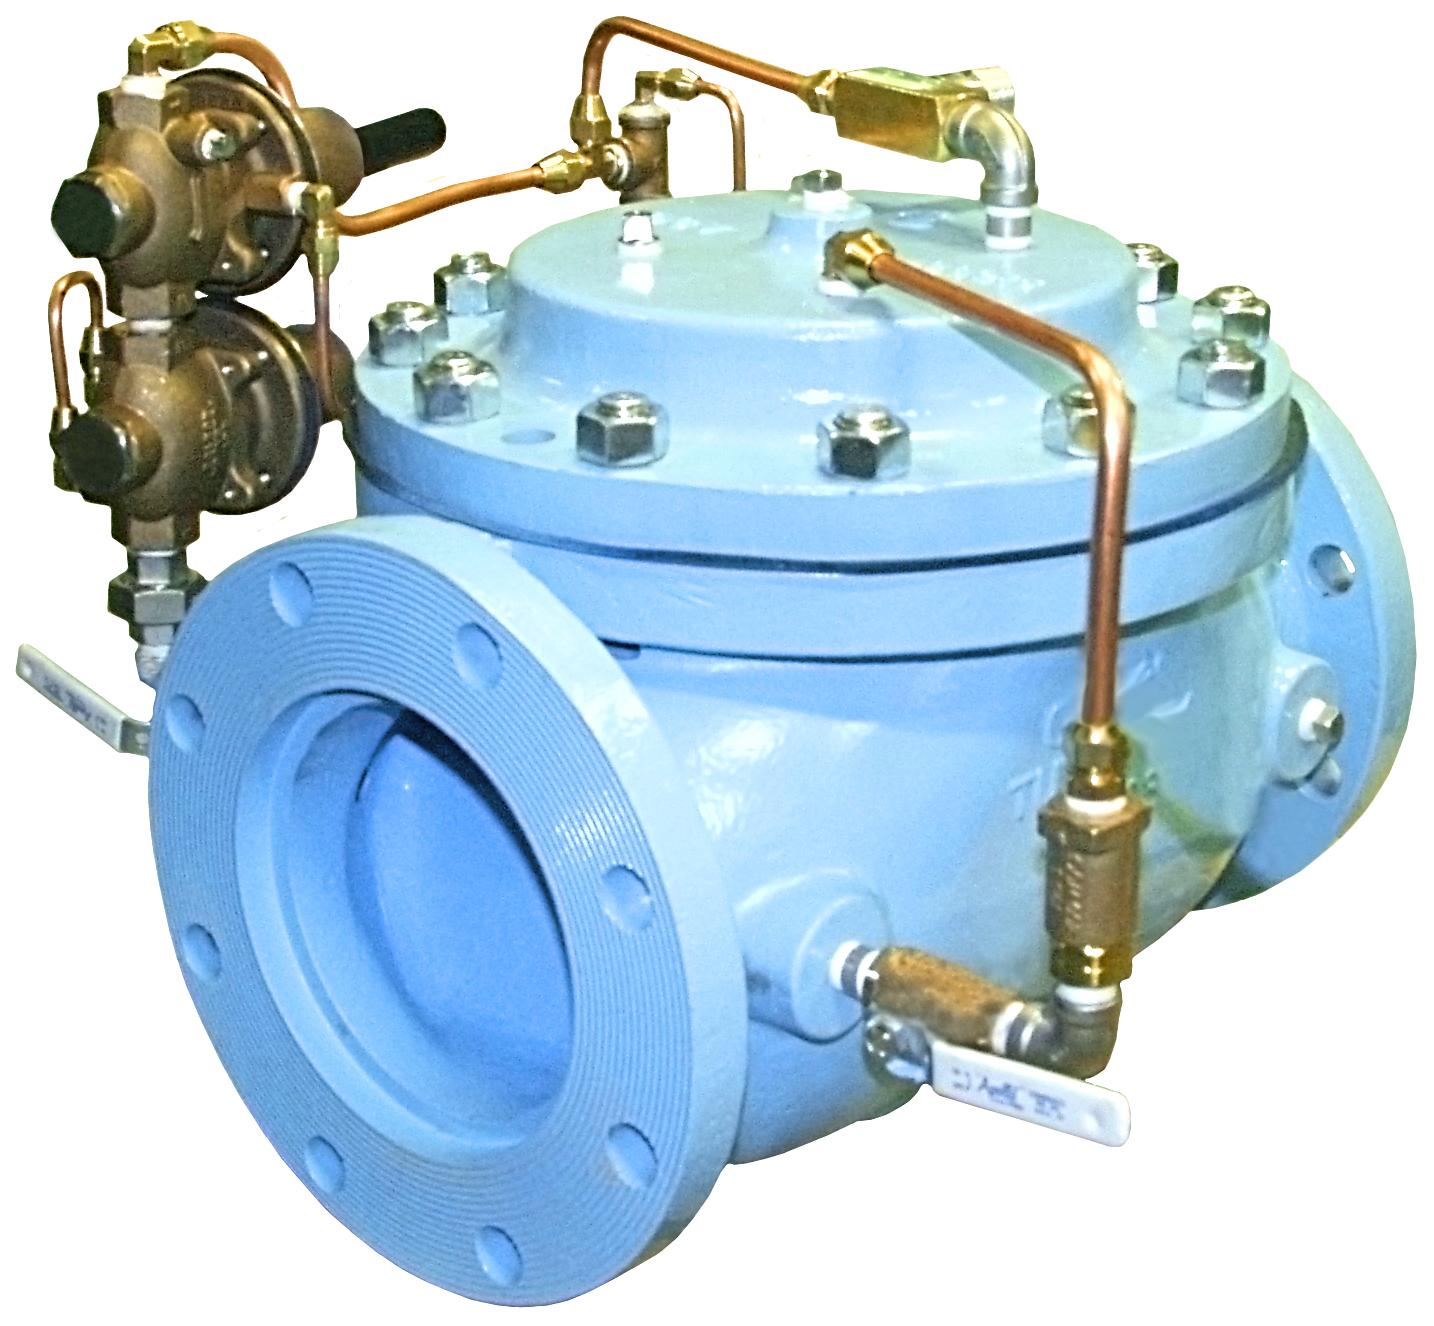 VAN KHAI THÁC MỎ - OCV - MỸ -Model 127-420 Pressure Reducing/ Sustaining/ Check Valve